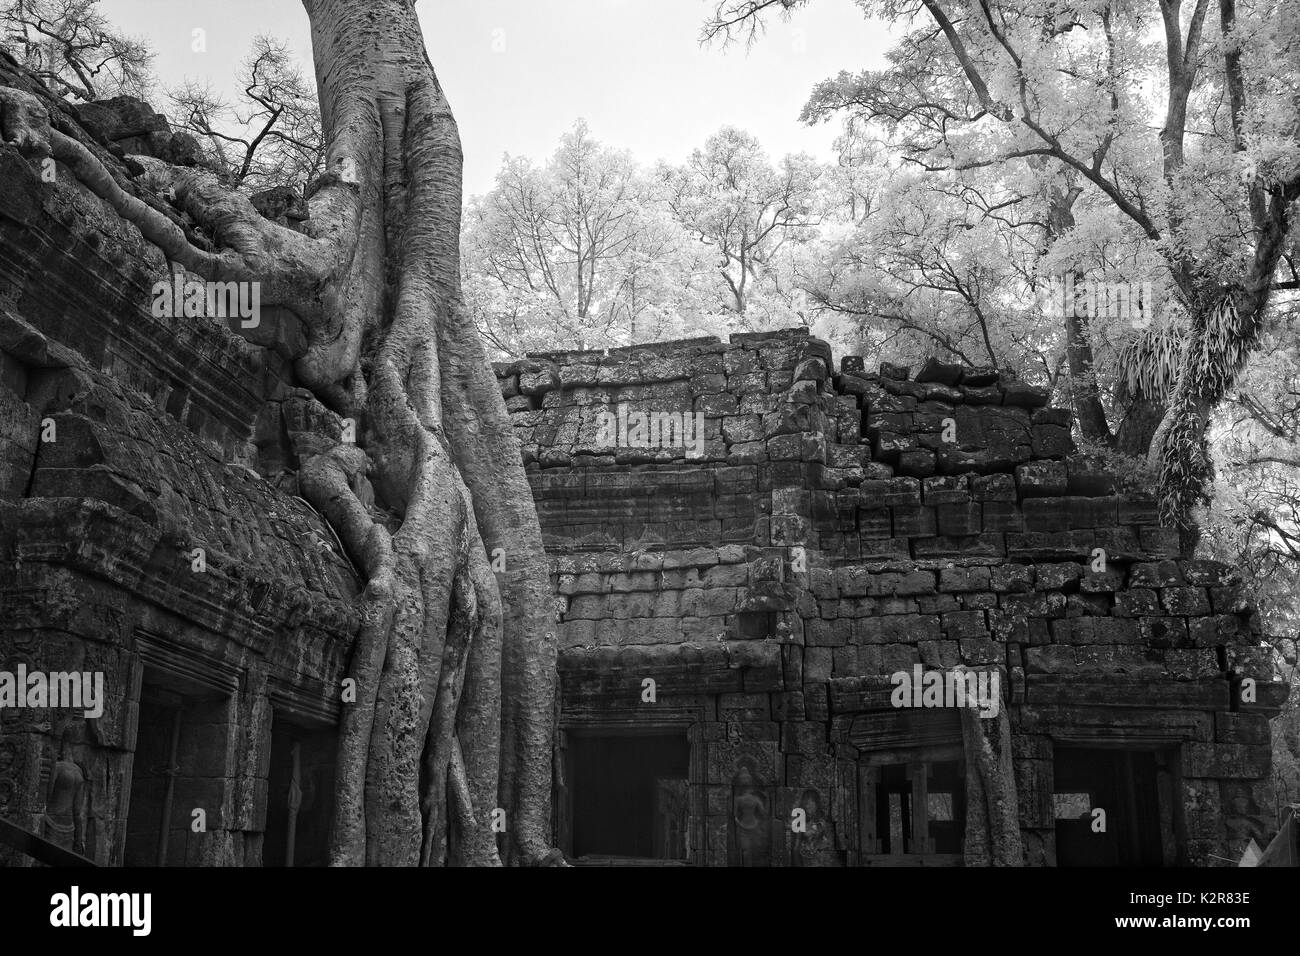 ta prohm castle amazing banyan tree roots siem reap Cambodia in black and white art - Stock Image